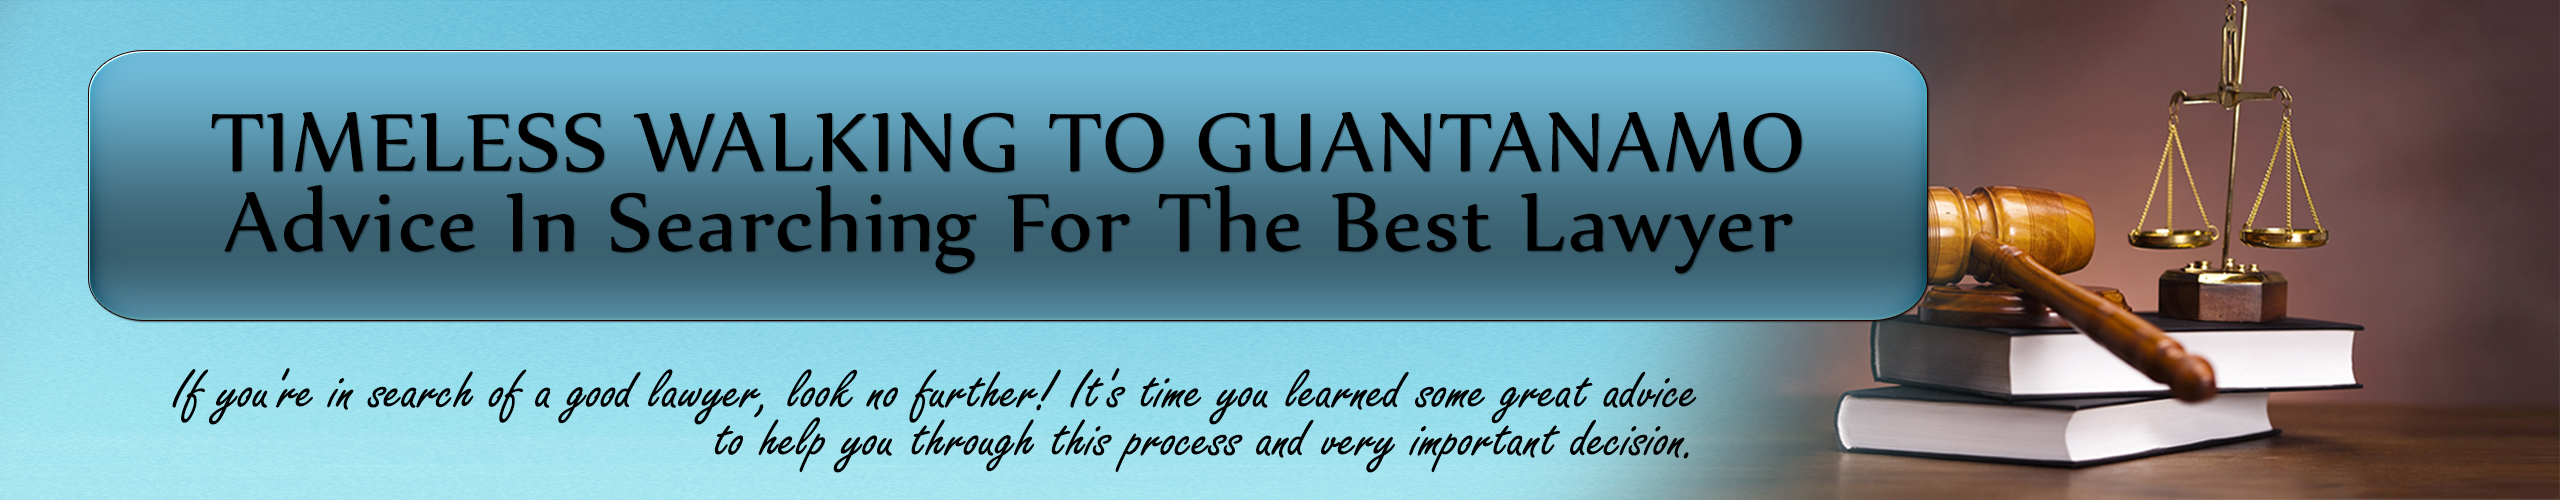 Timeless Walking to Guantanamo Advice In Searching For The Best Lawyer